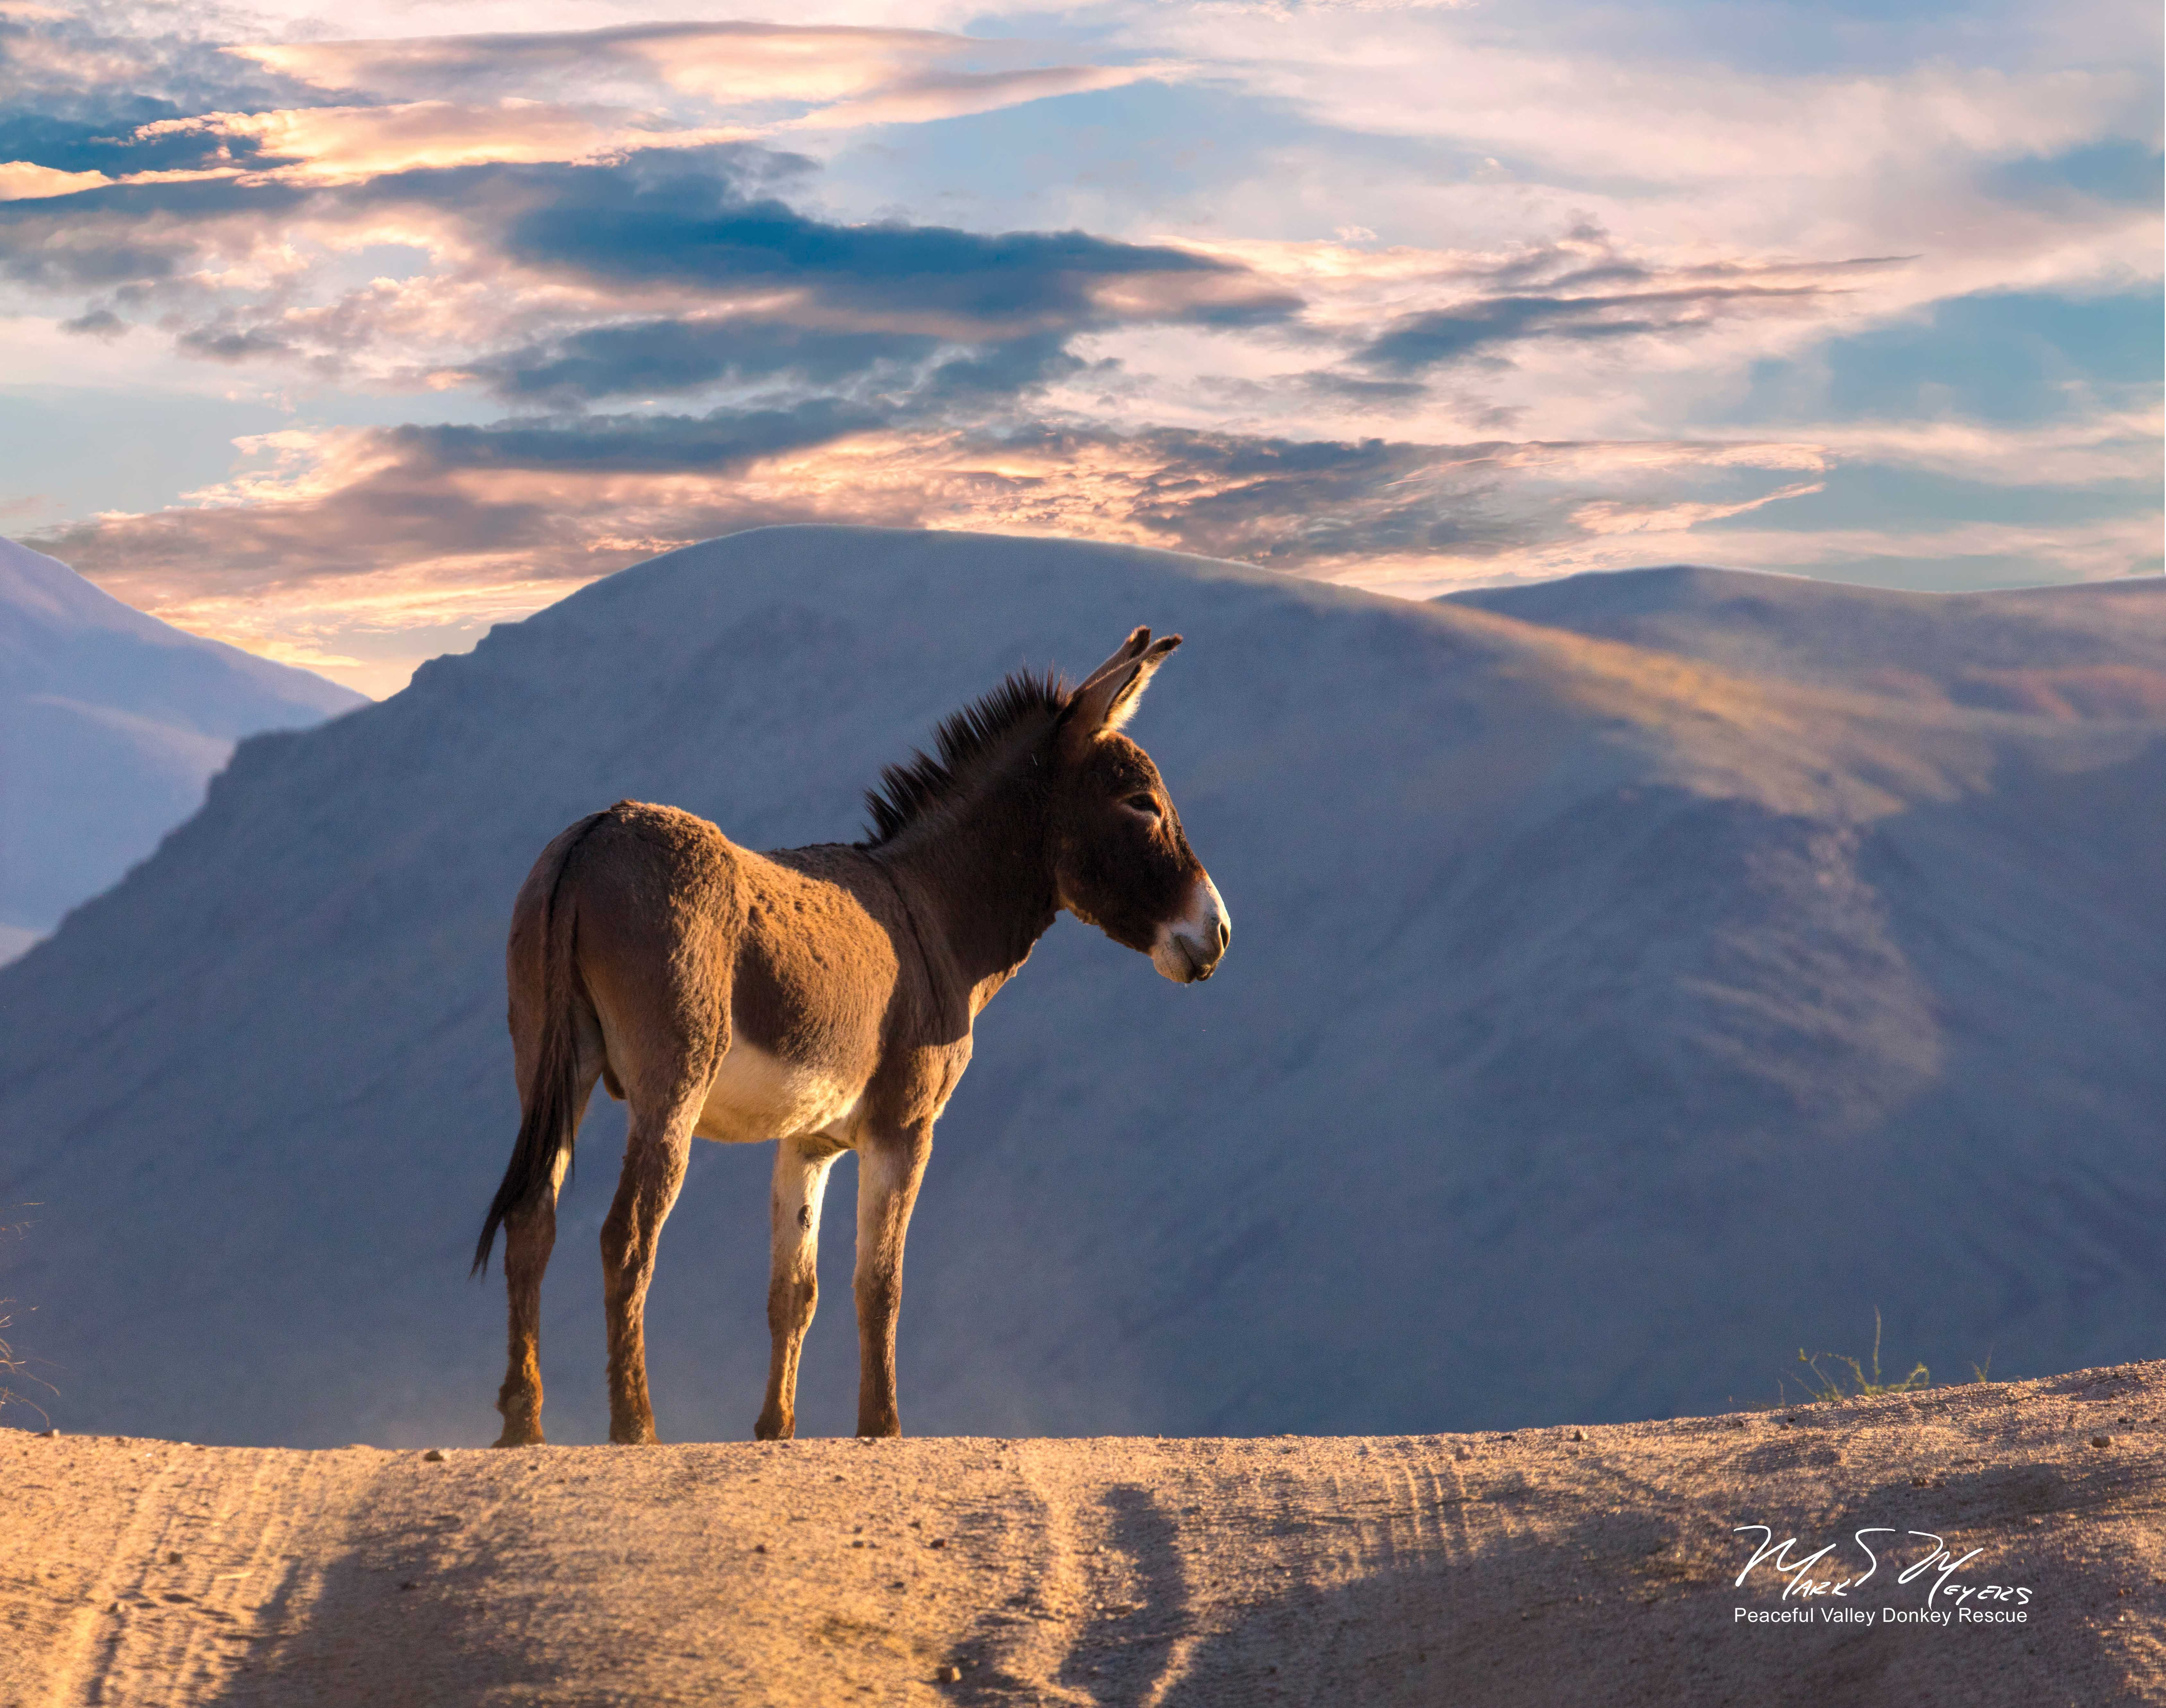 A burro stands atop a hill with a sunset sky.